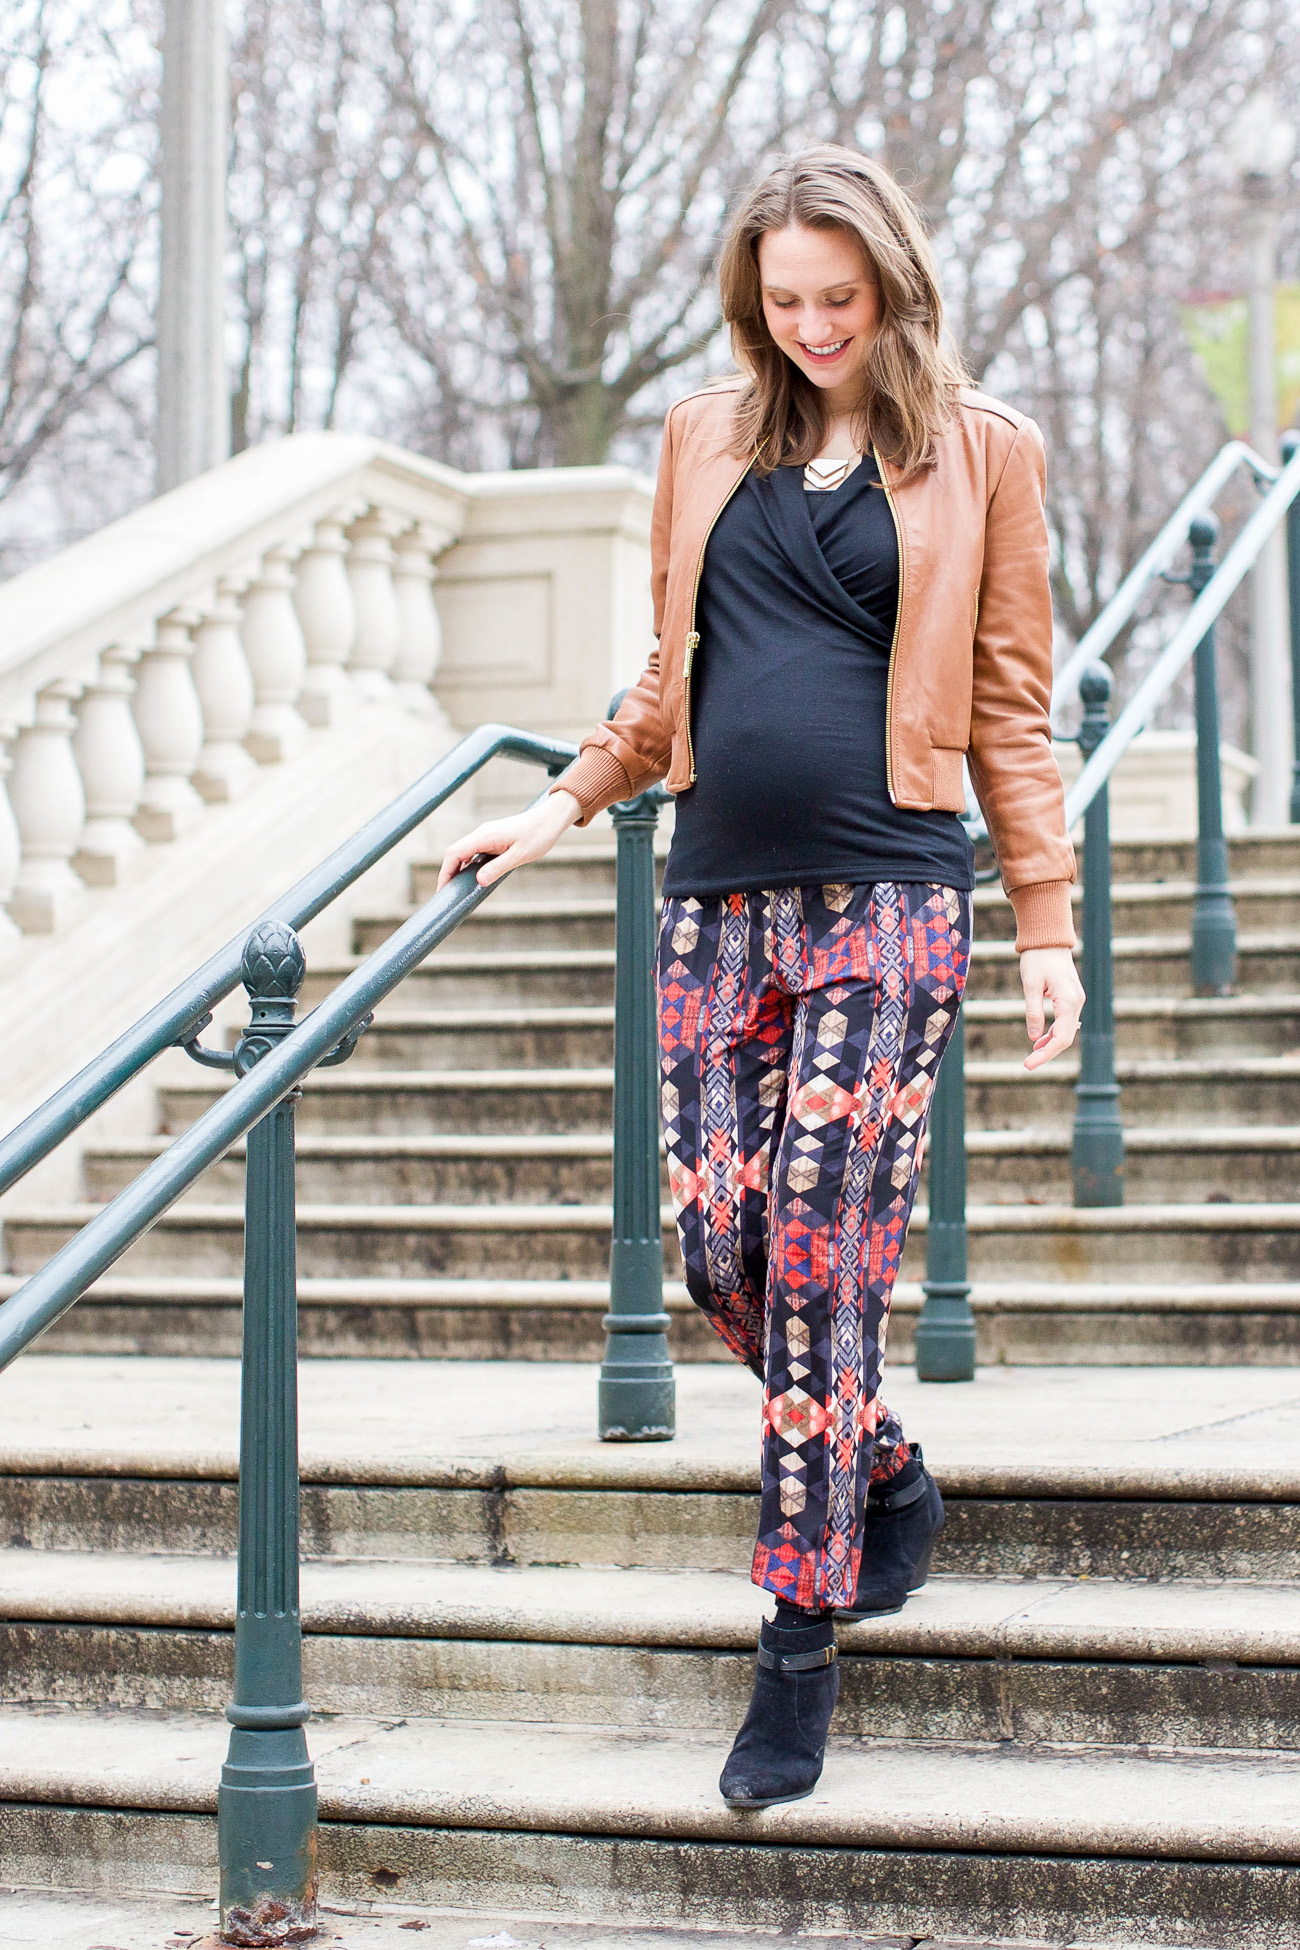 Pregnancy style, how to dress when you're pregnant